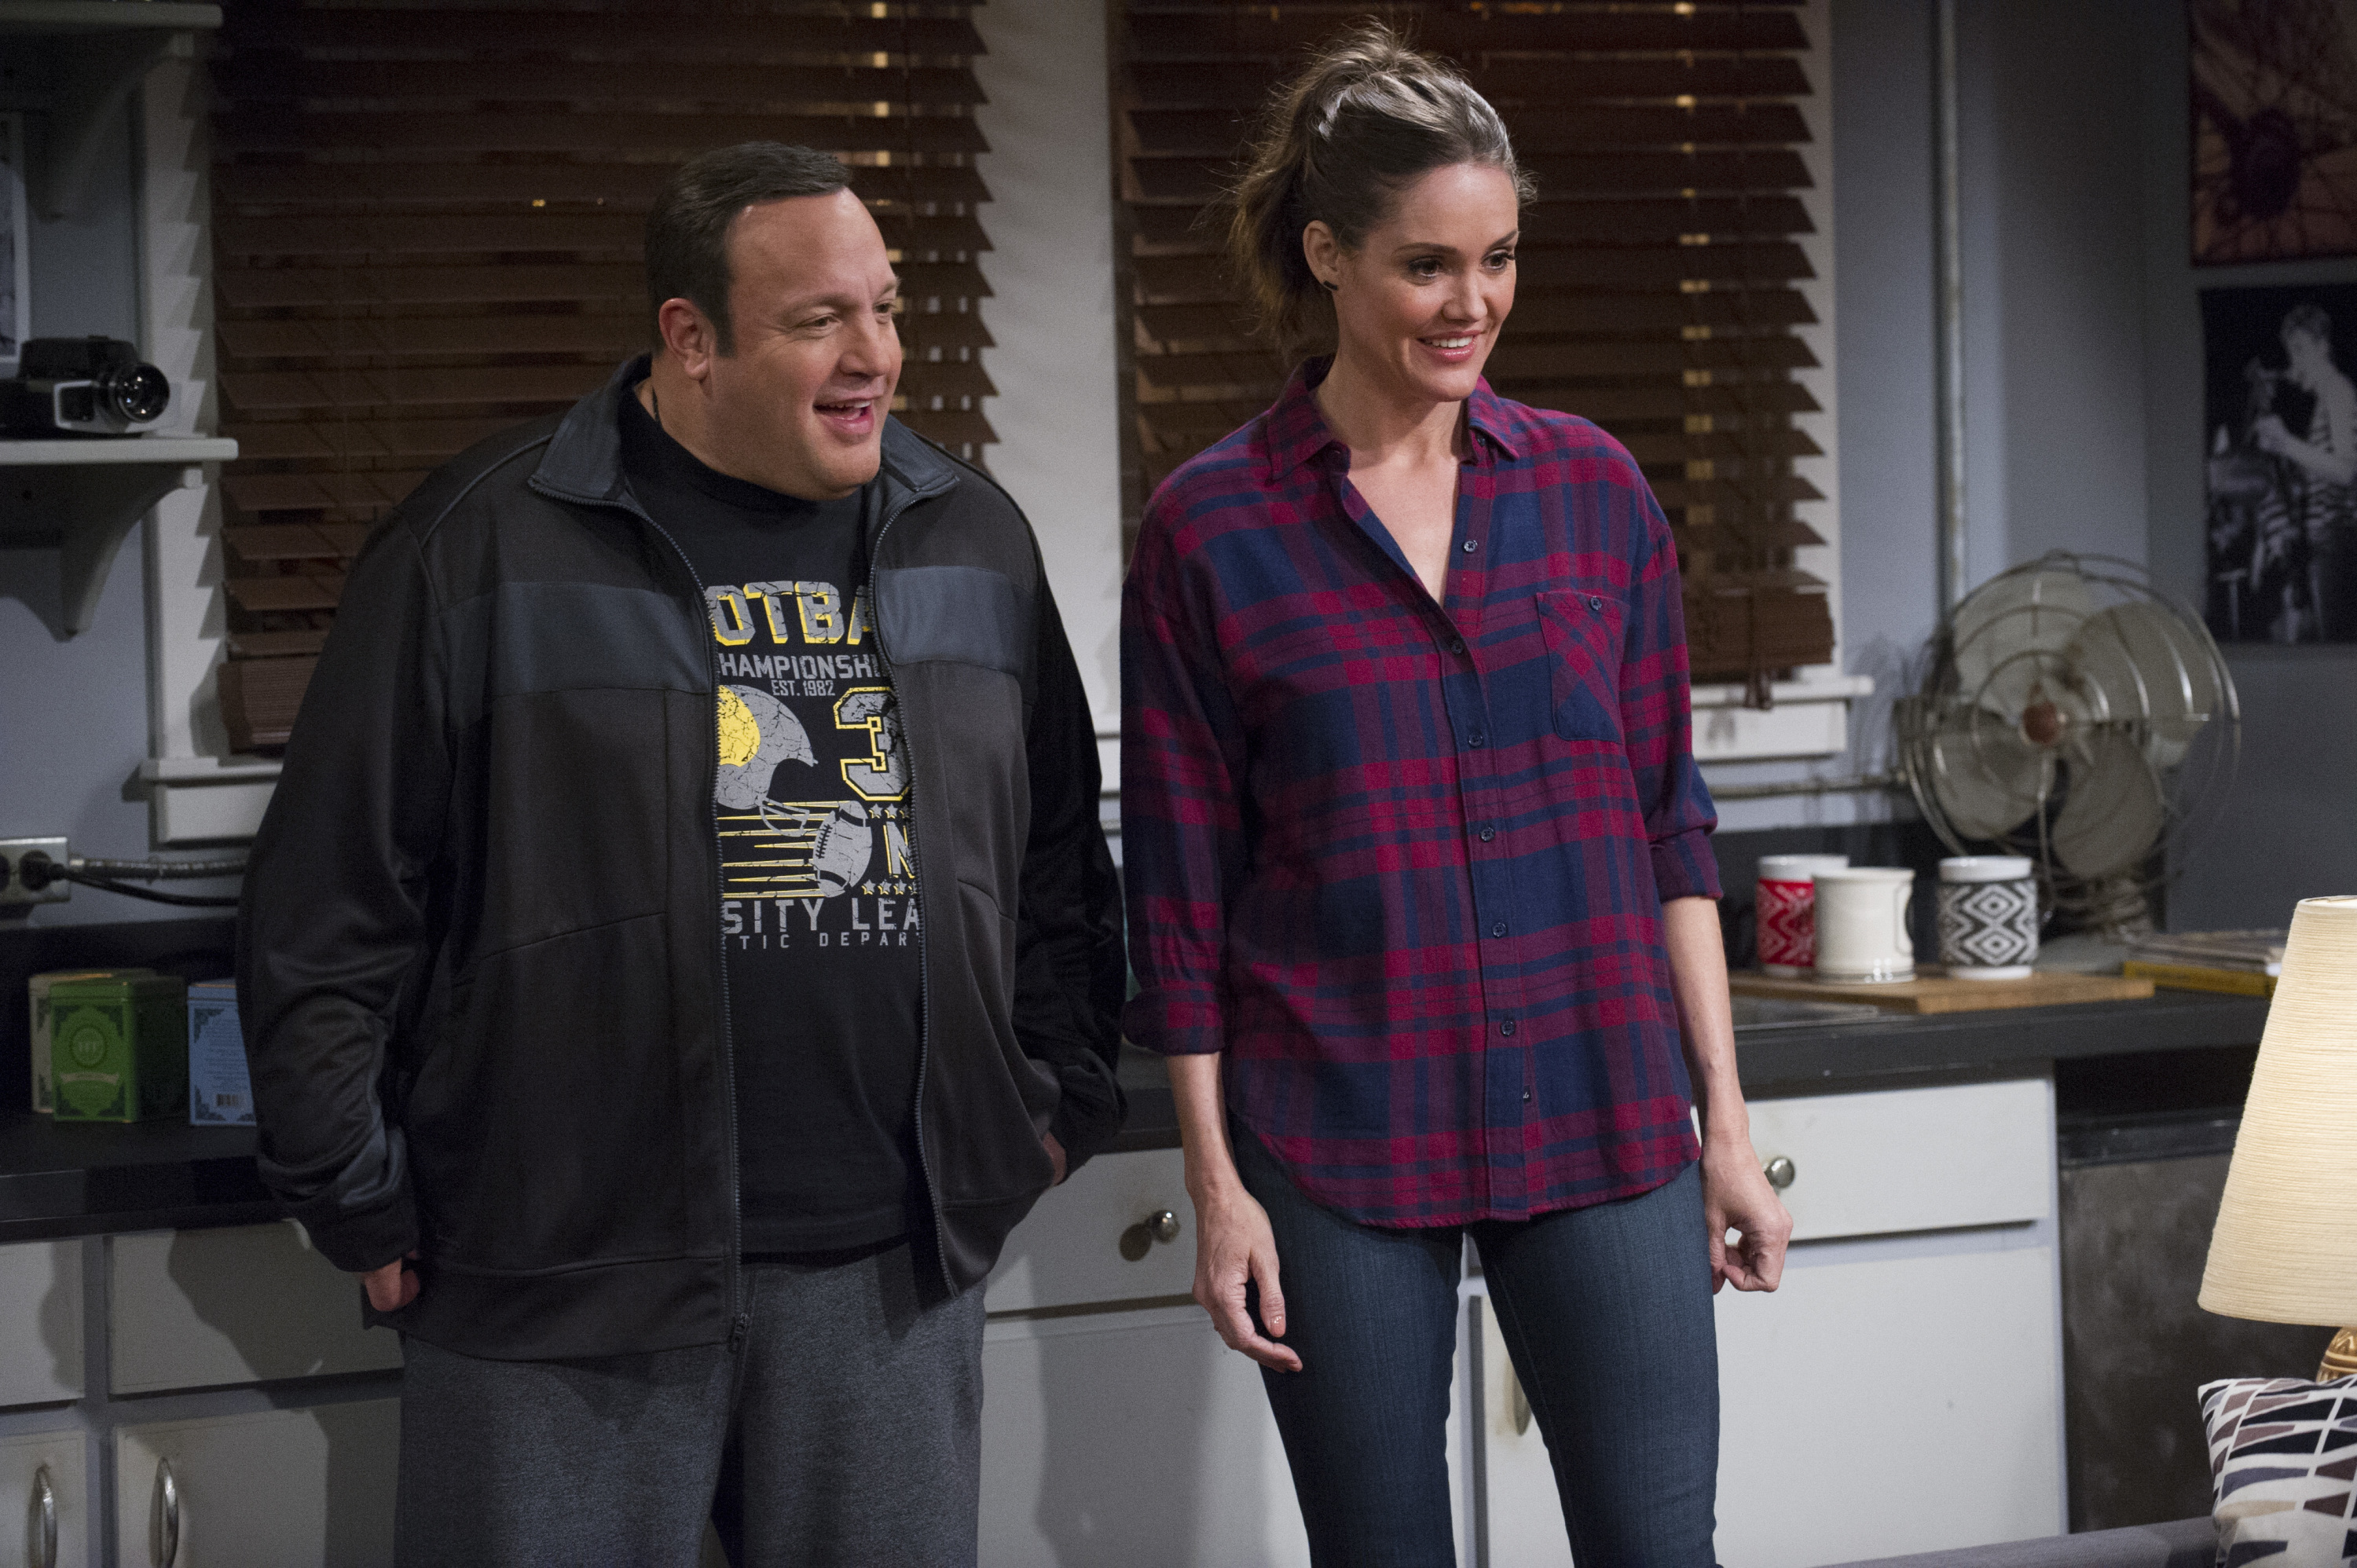 Kevin James Explains Tv Wife S Onscreen Death James clement (china, micronesia) previous survivor she respects least: kevin james explains tv wife s onscreen